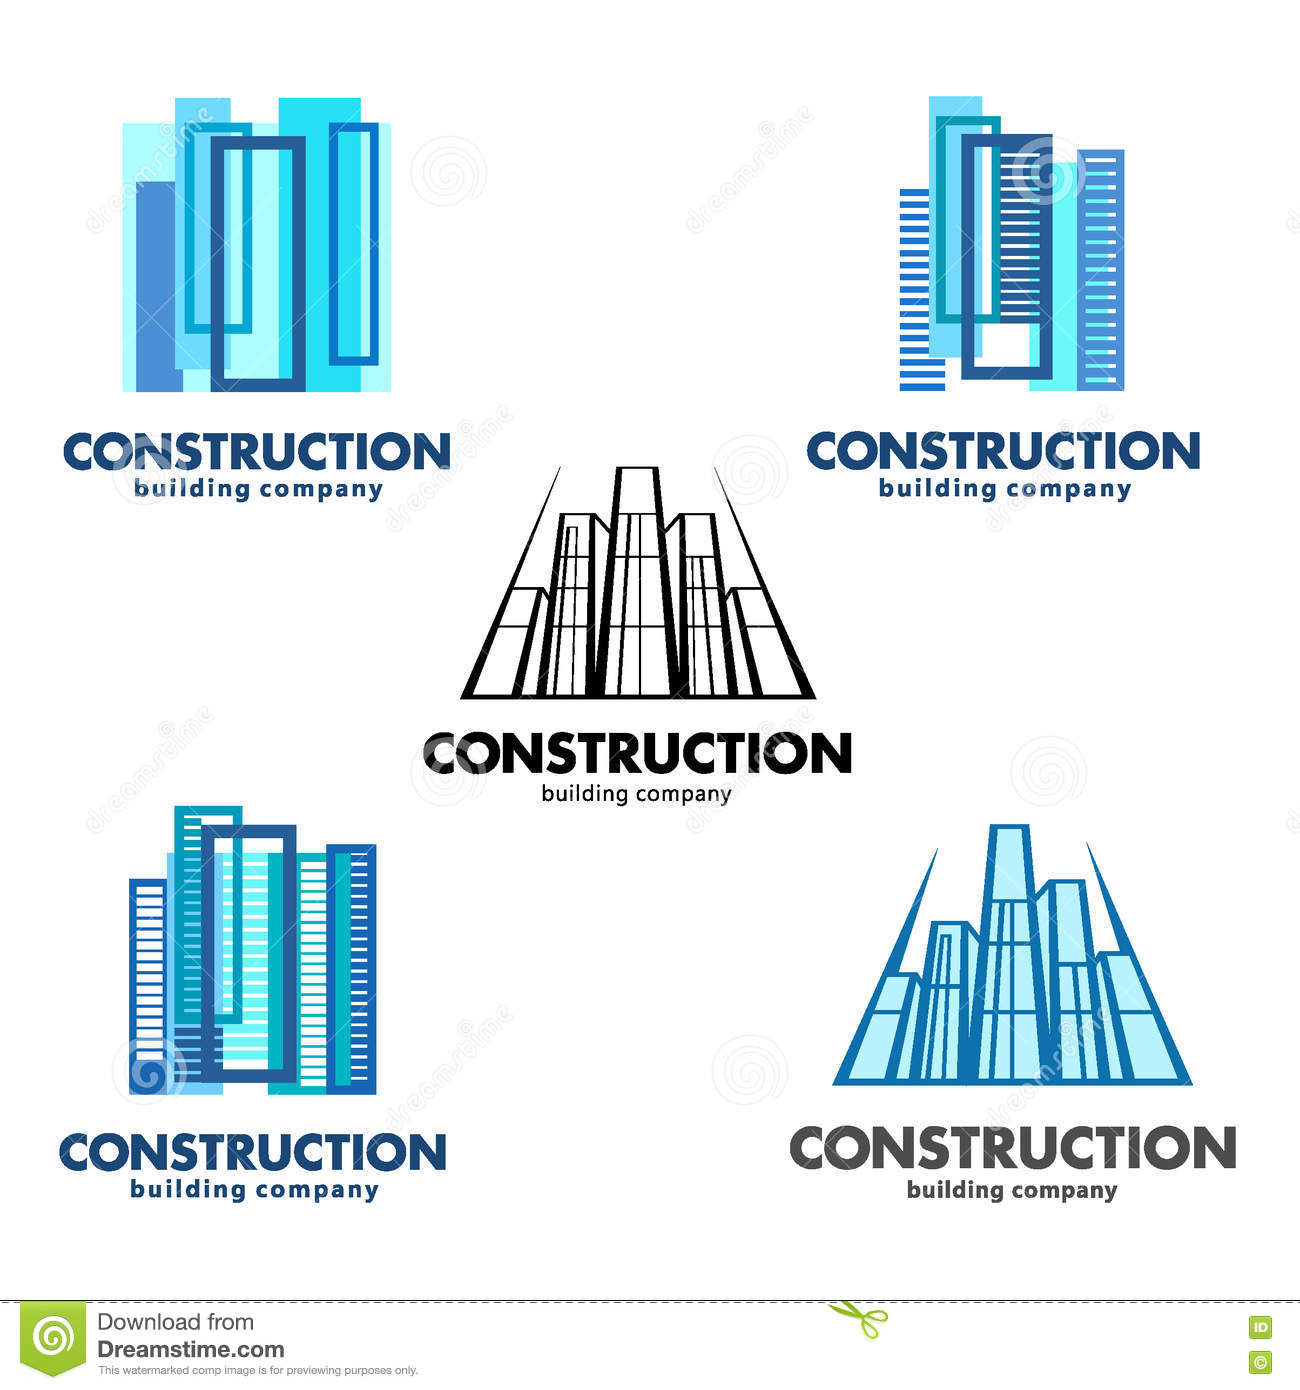 Architect Company architect construction concept. vector logos for construction and